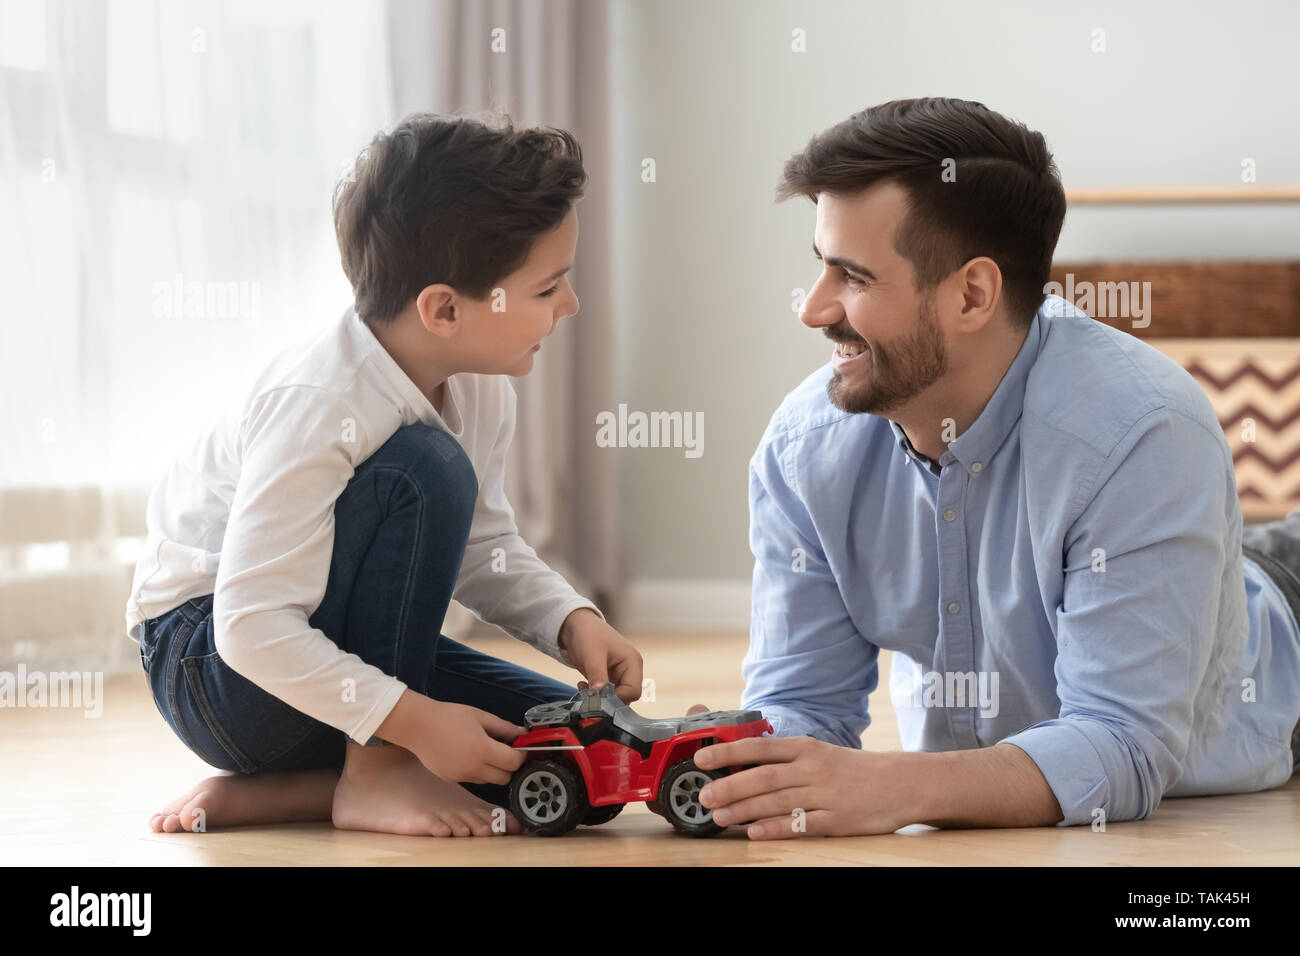 Happy father and son lying on floor have fun playing with toy car racing together, smiling dad and boy child relax at home engaged in game, laugh enjo Stock Photo